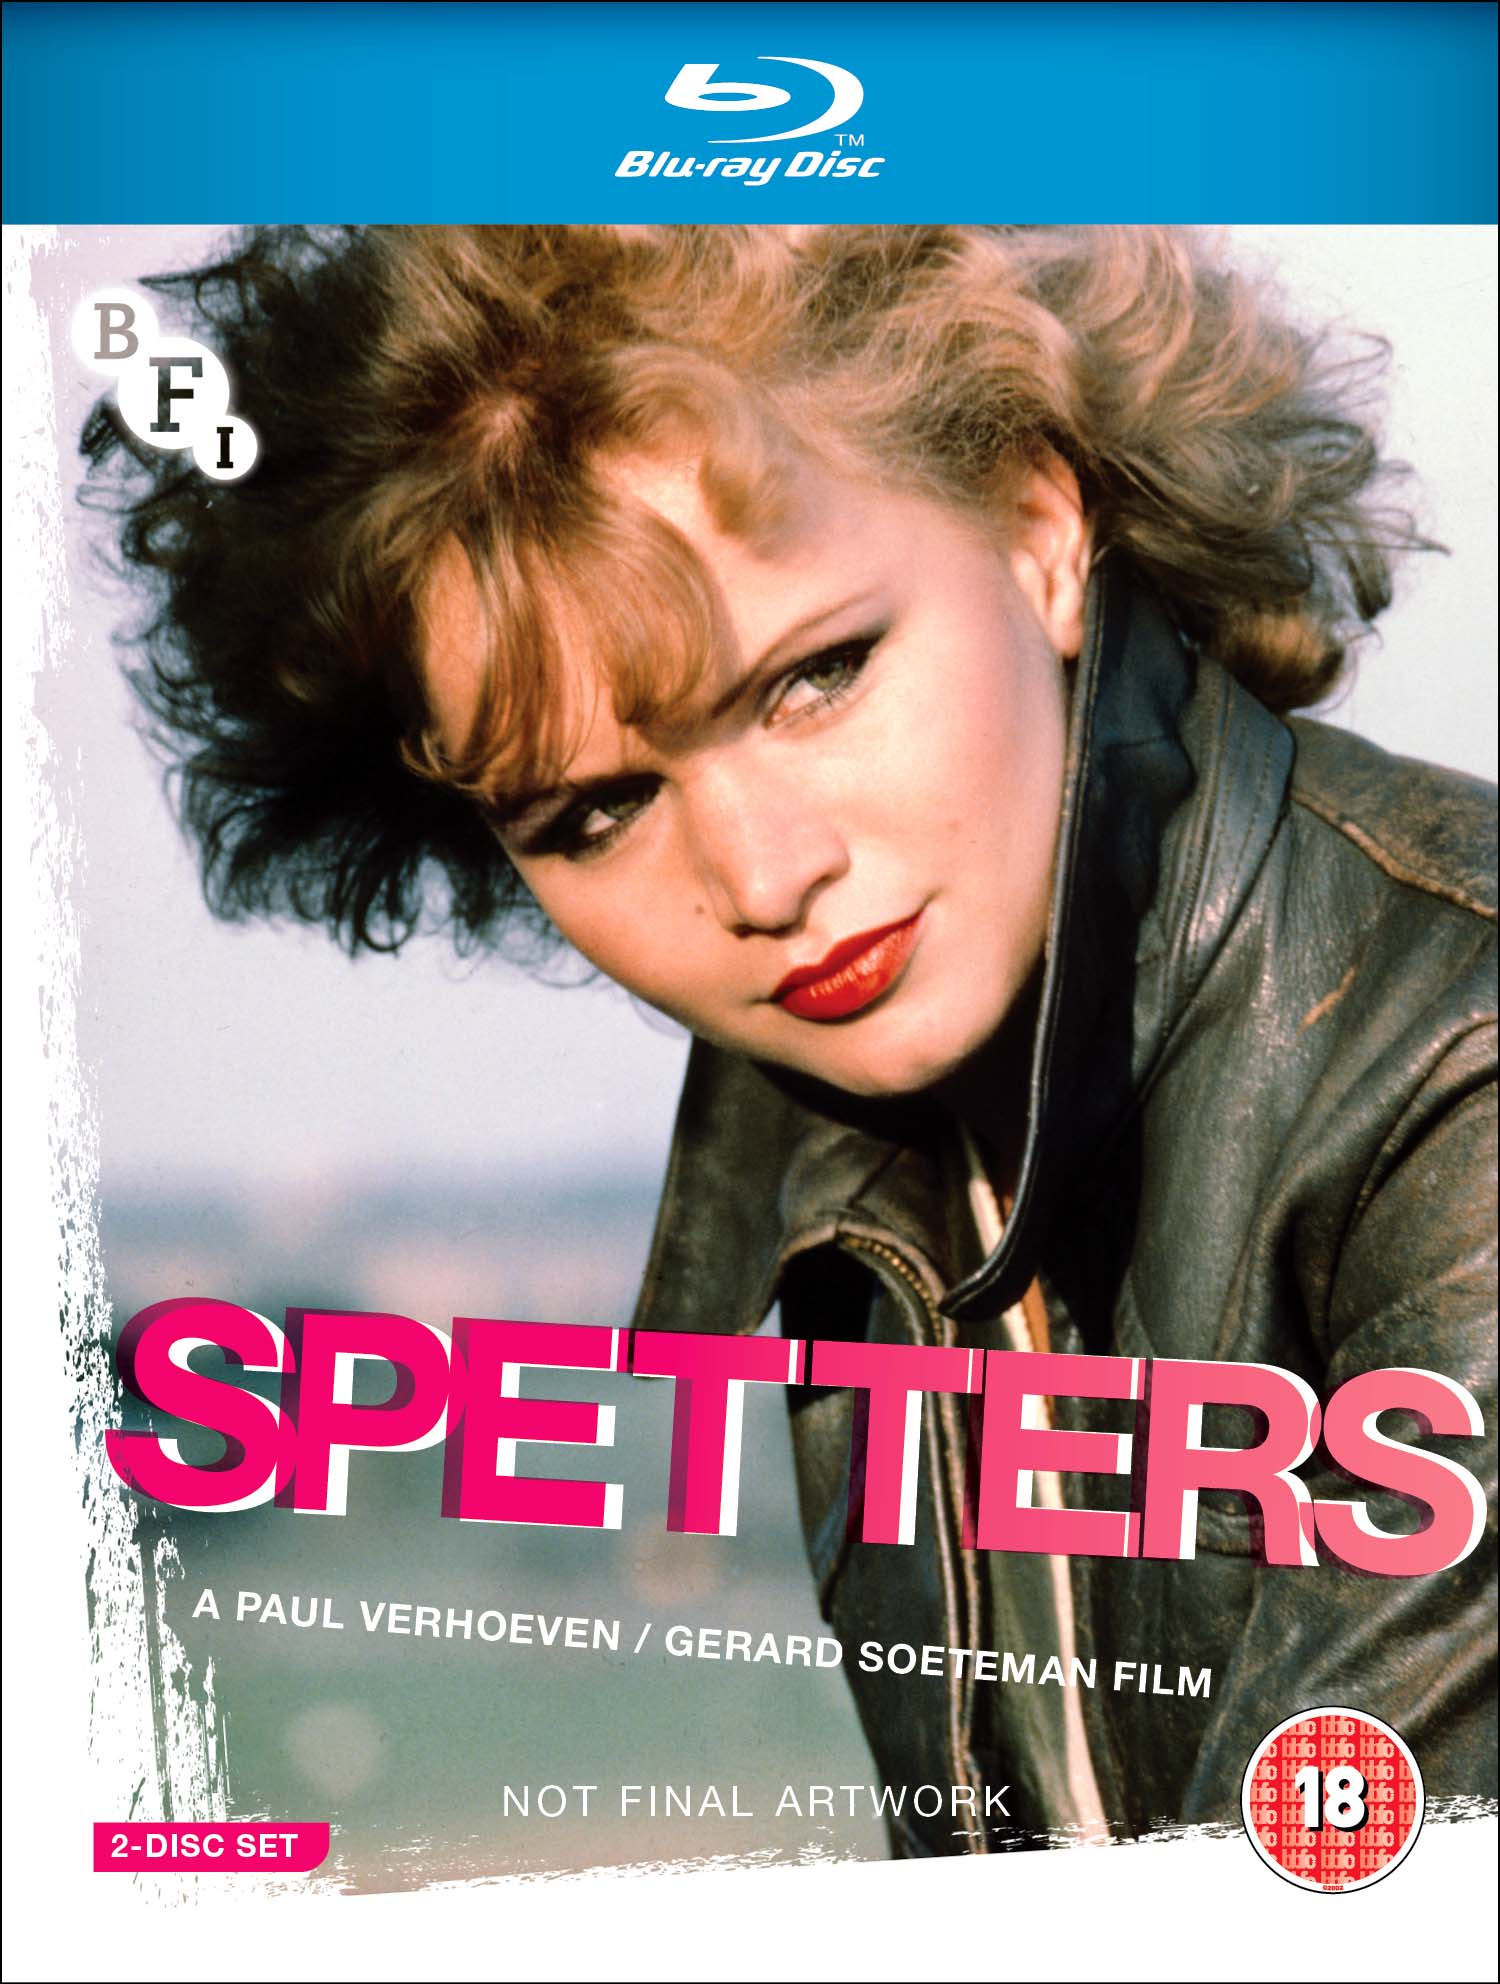 Buy PRE-ORDER Spetters (2 disc Blu-ray / DVD set)